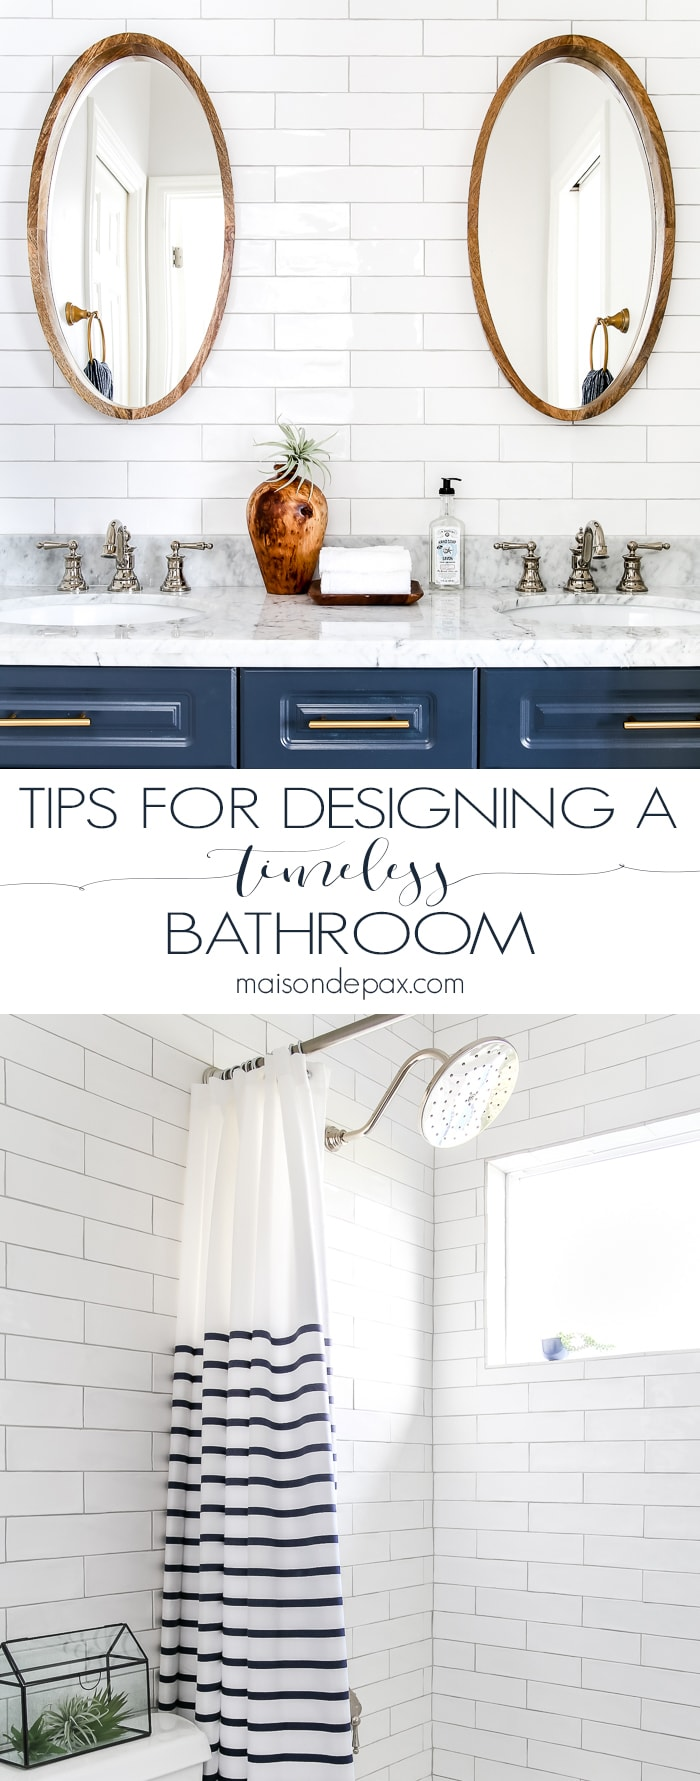 10 Tips for Designing a Bathroom with Trendy yet Timeless Appeal ...